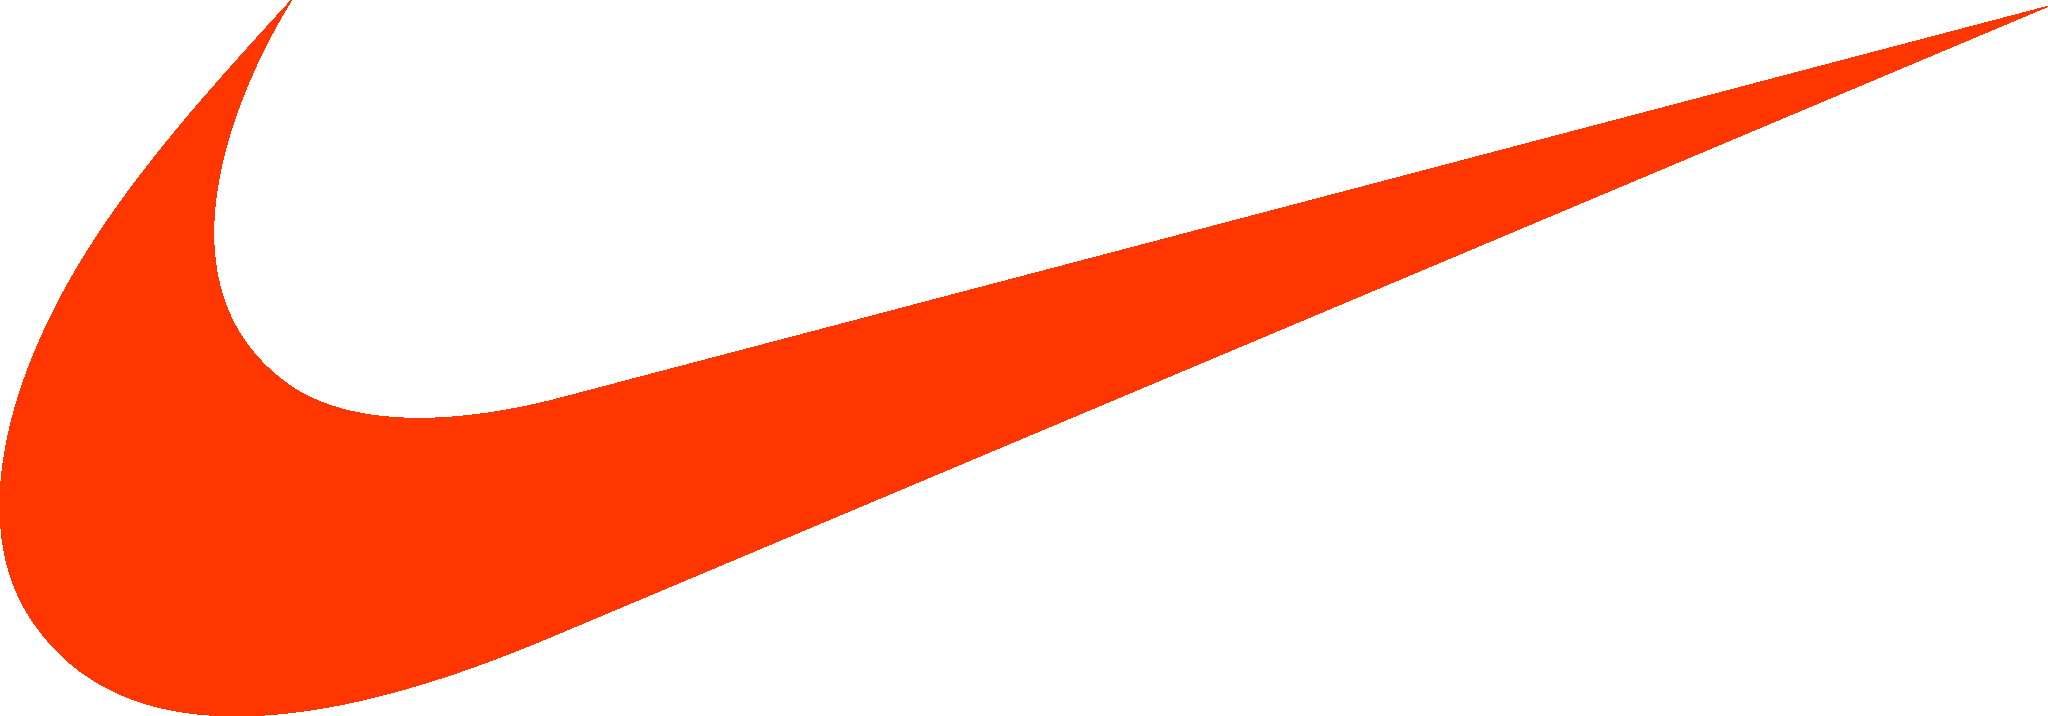 Orange Swoosh